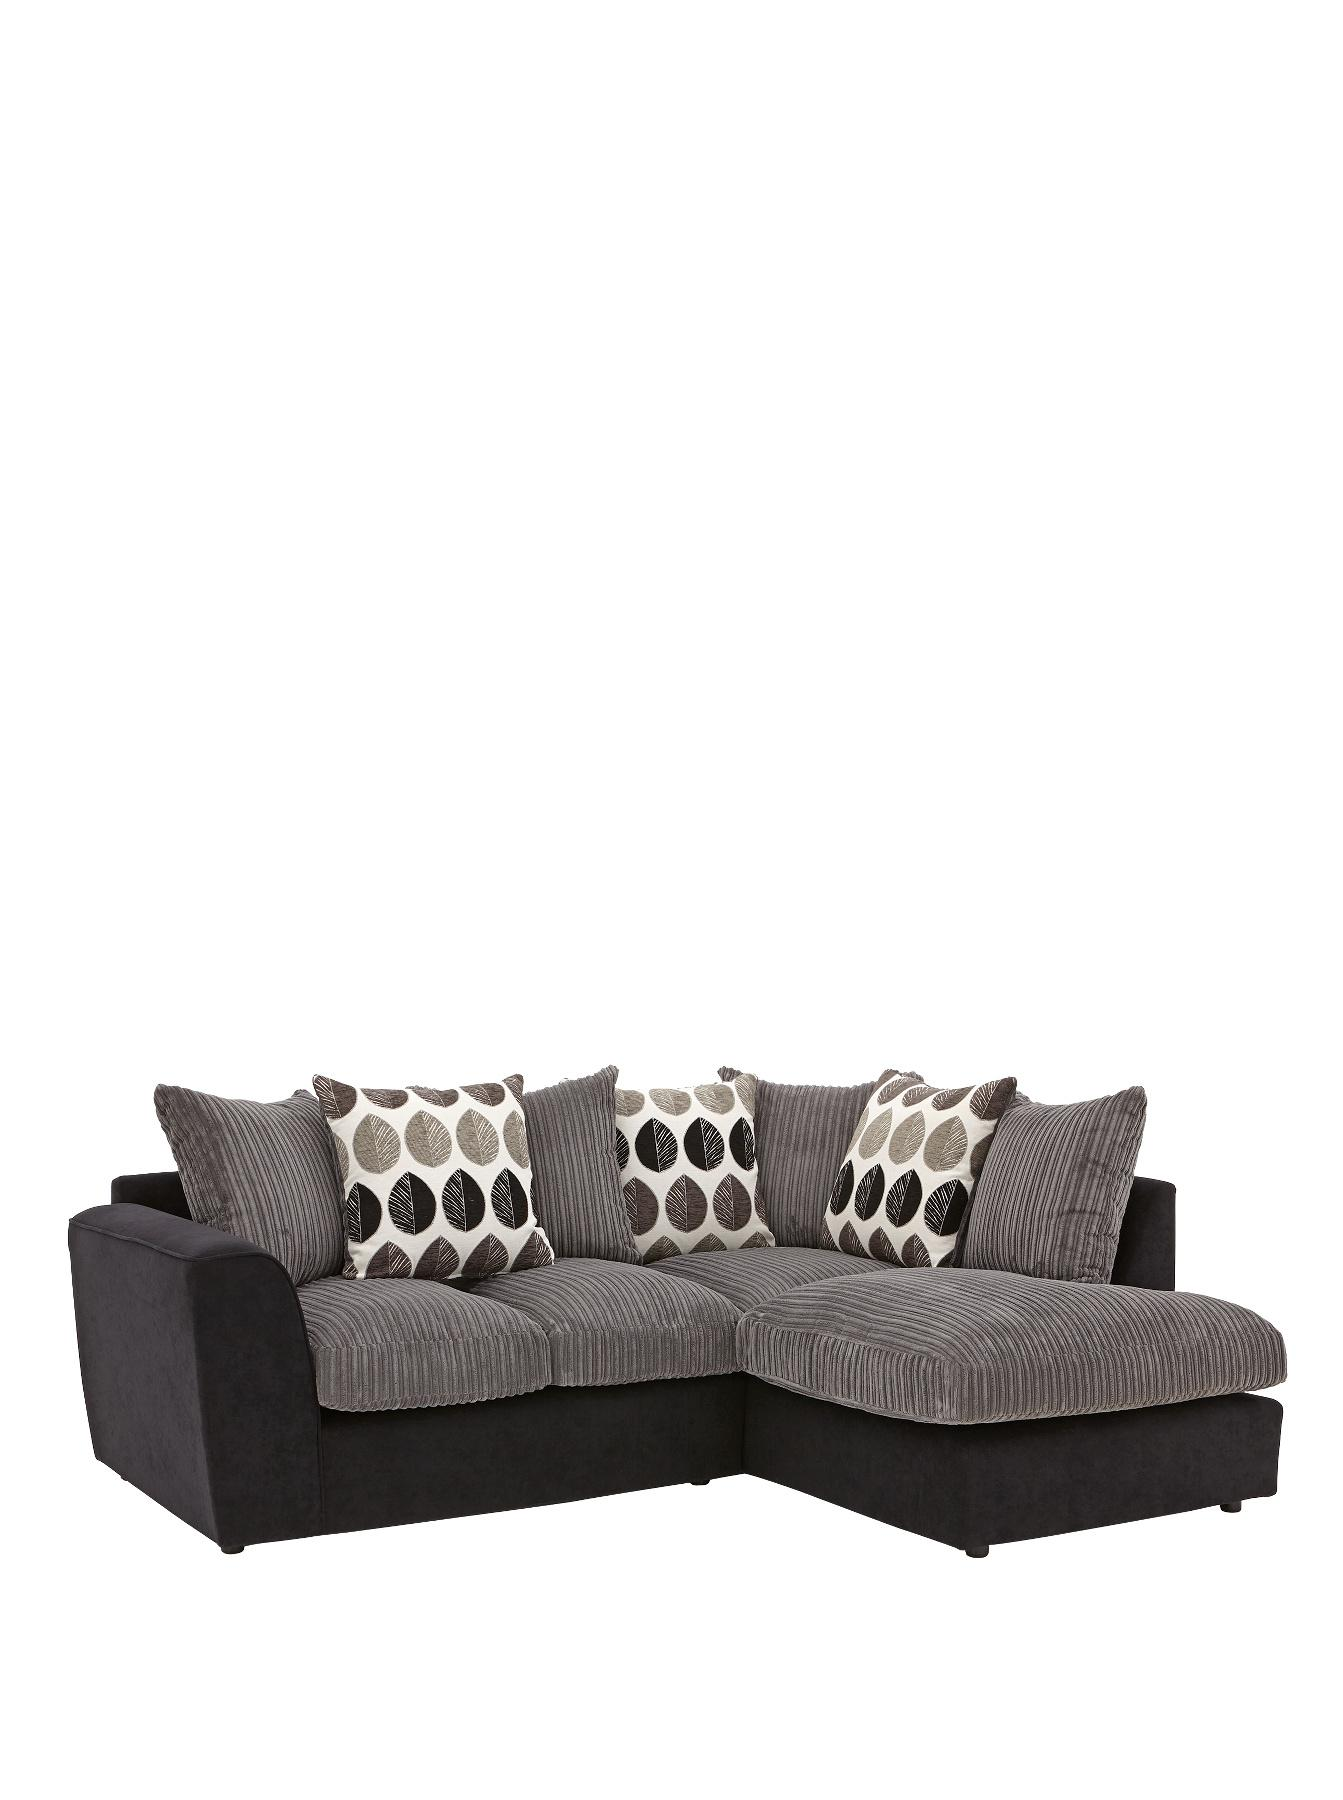 Ava Right Hand Corner Chaise Sofa - Black, Black,Grey